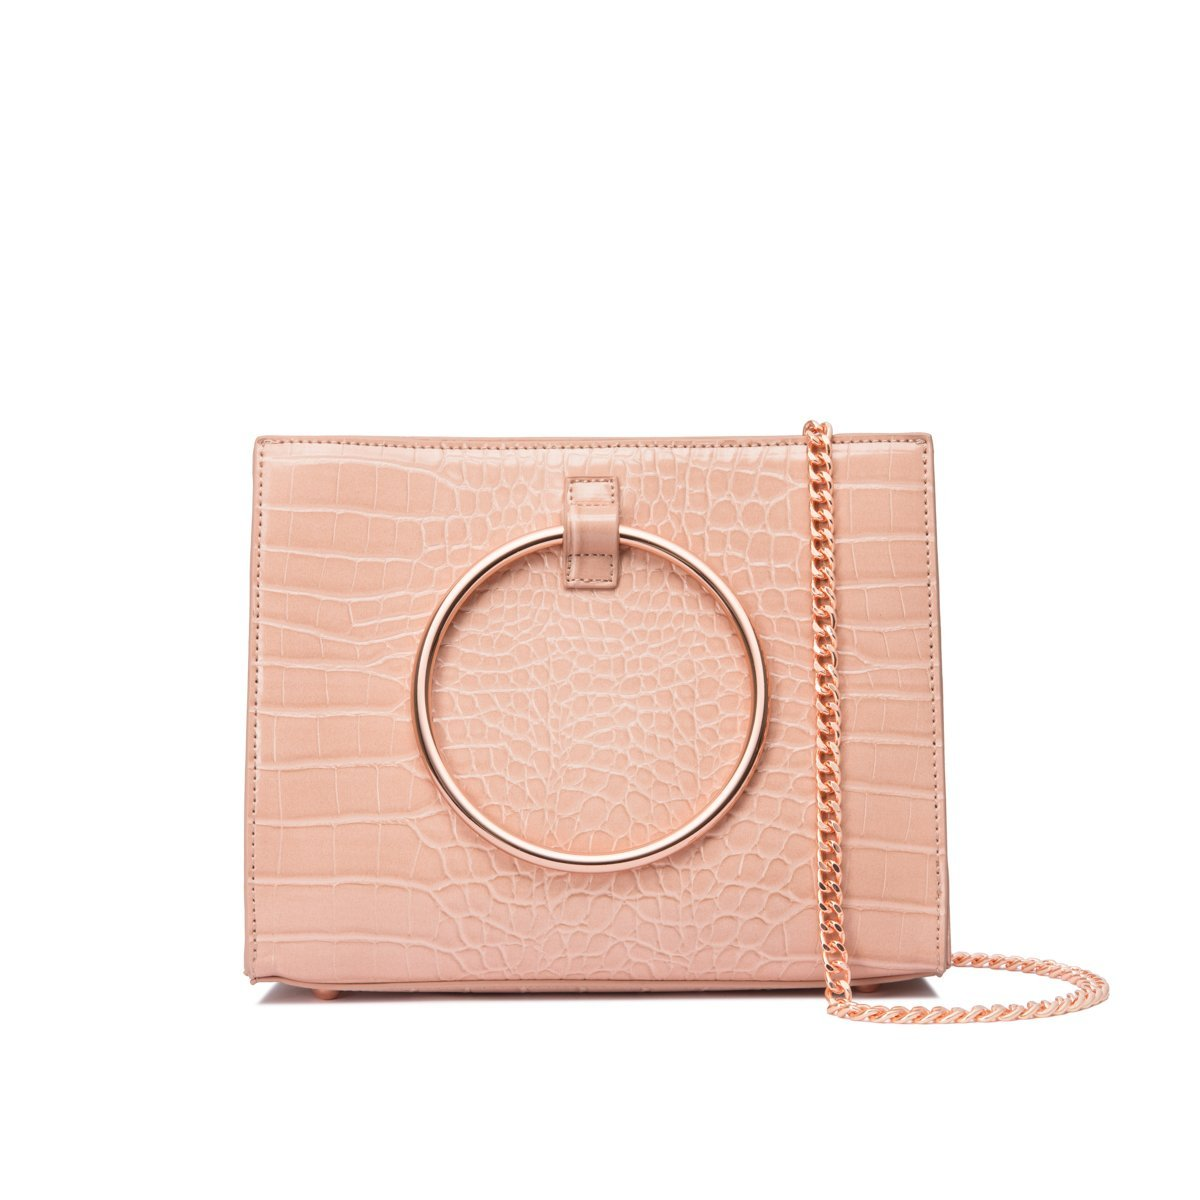 Moda Croc Top Handle Bag (Nude Peach/Rose Gold)